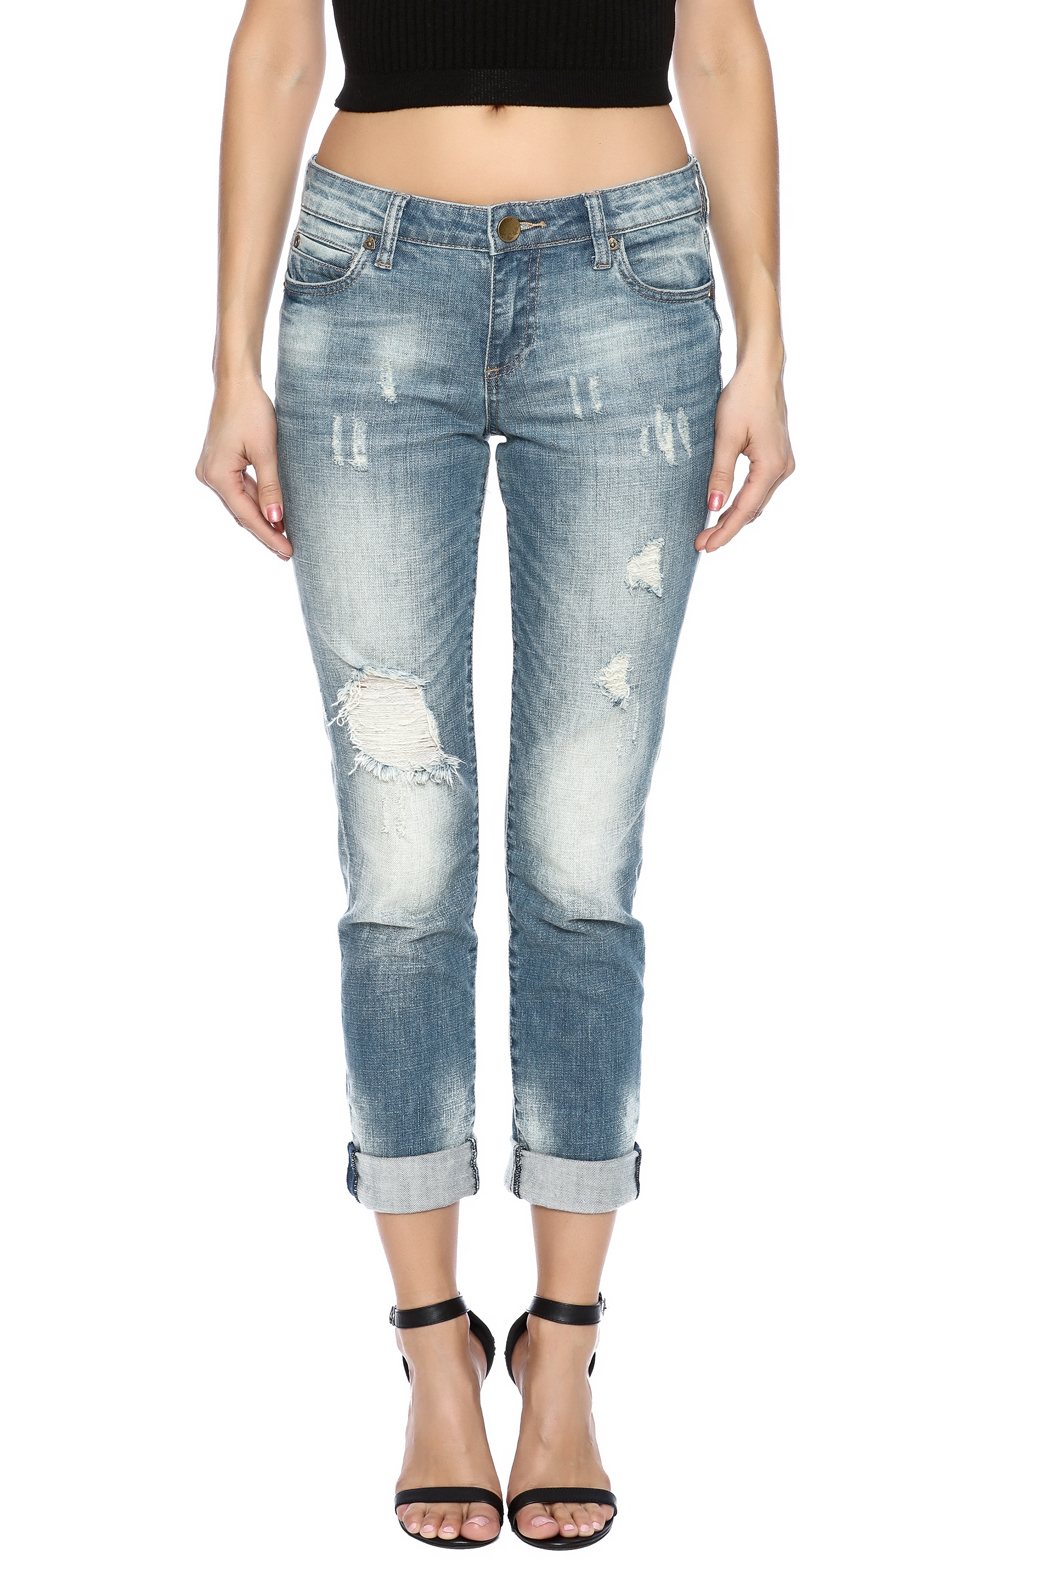 Kut from the Kloth Distressed Boyfriend Jean - Side Cropped Image